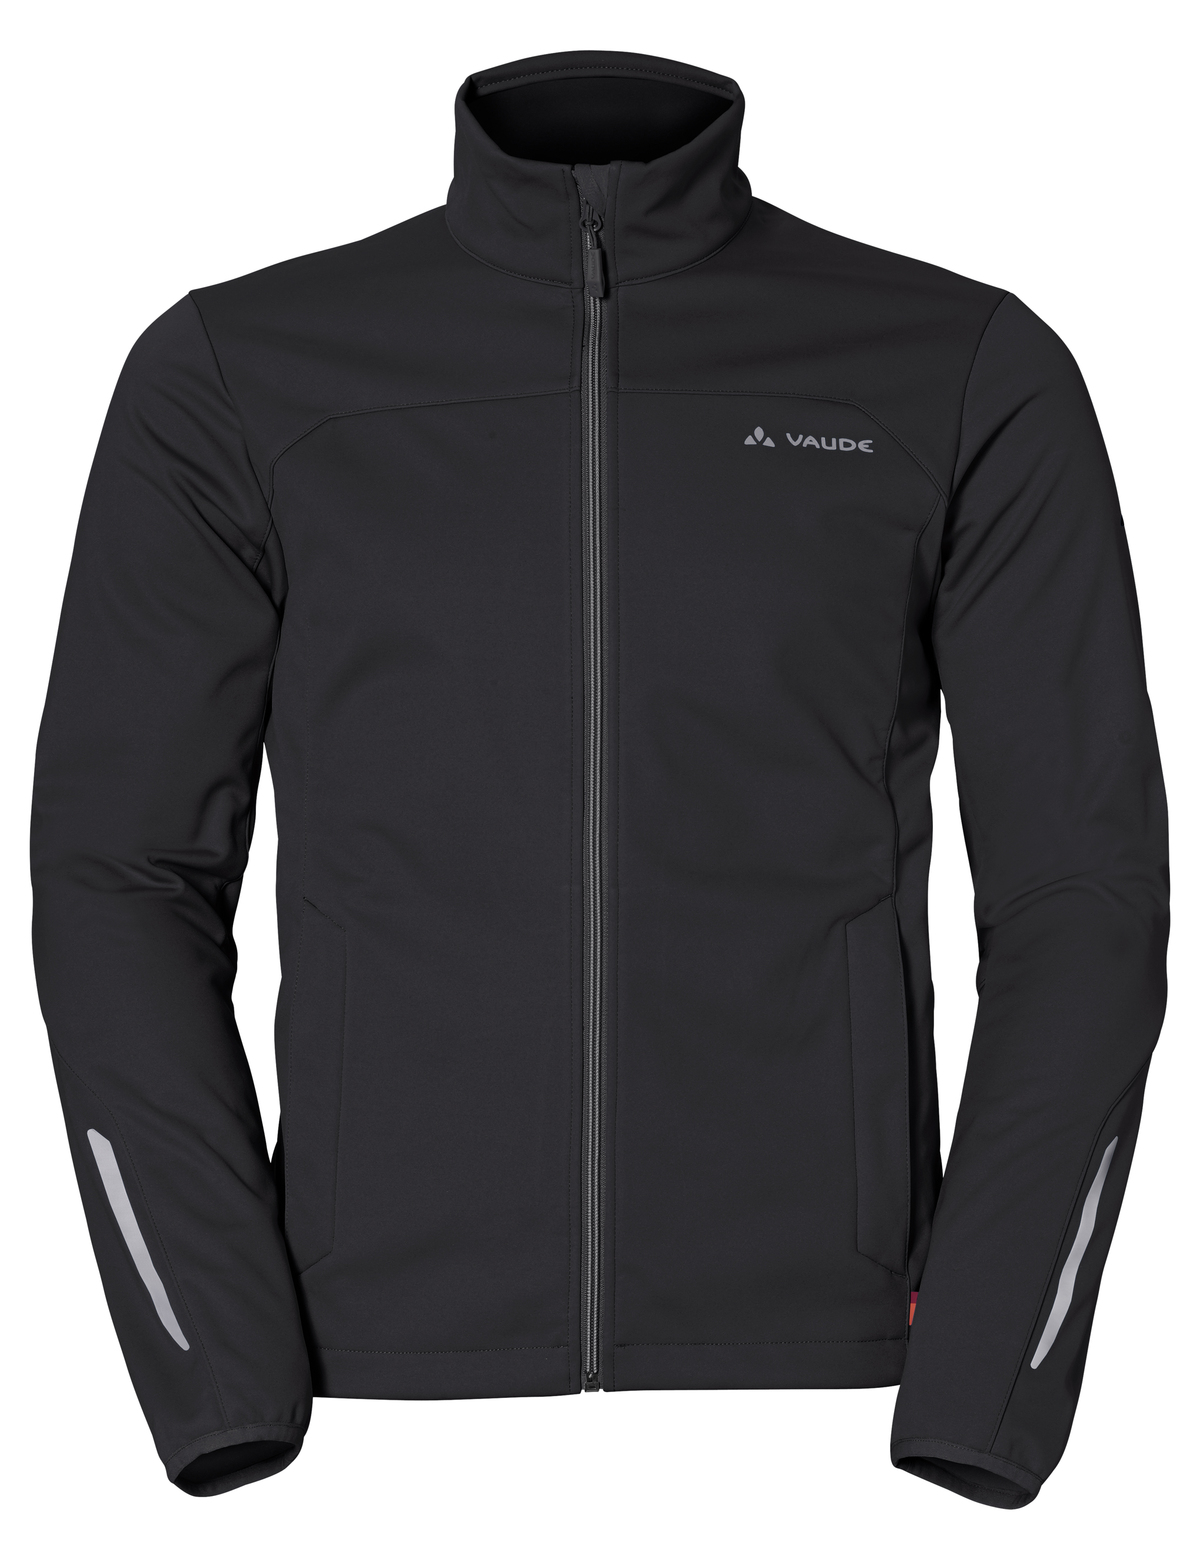 VAUDE Men´s Wintry Jacket III black Größe S - schneider-sports